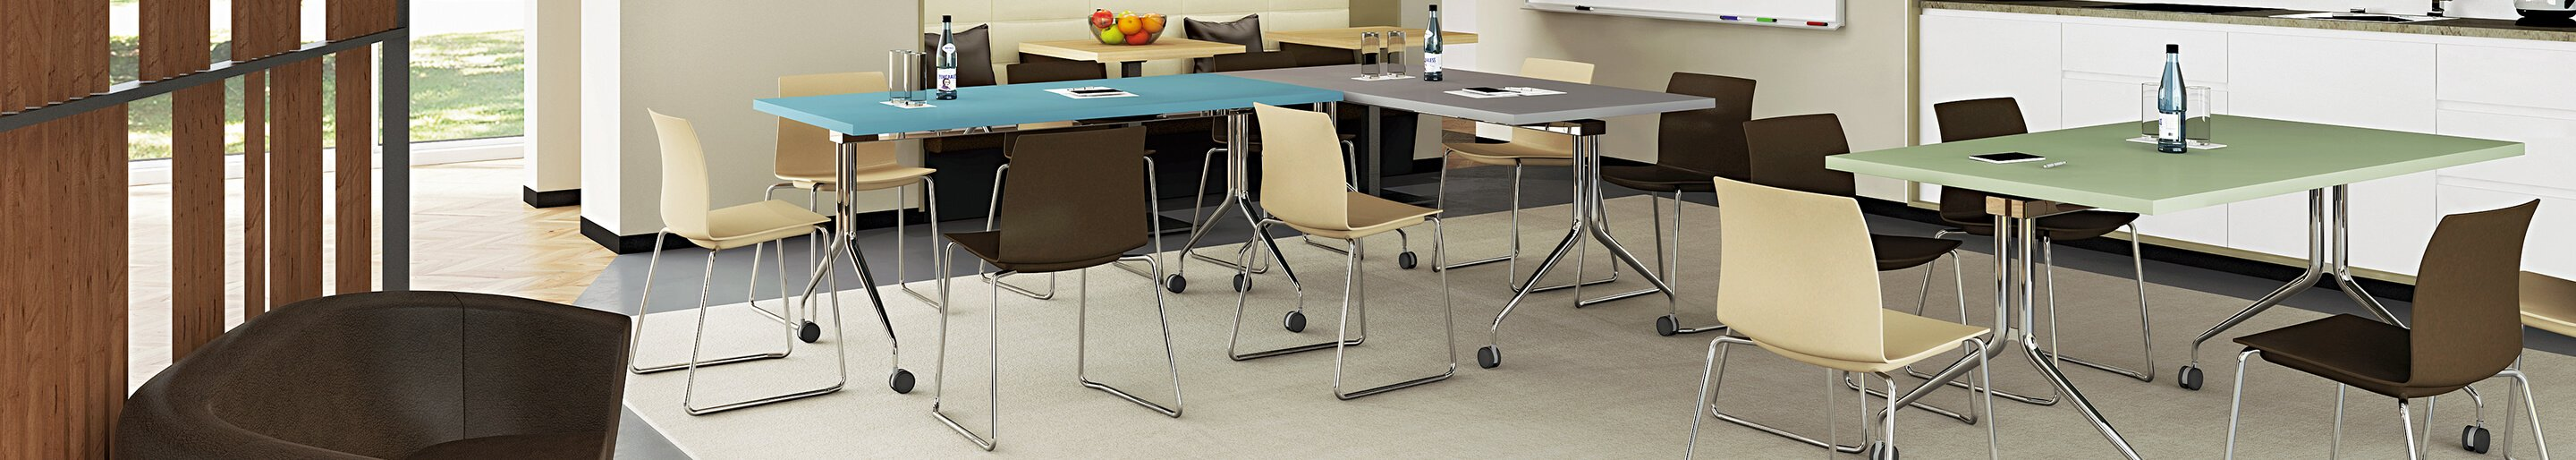 Indoor Seminar & Conference tables for your restaurant or hotel